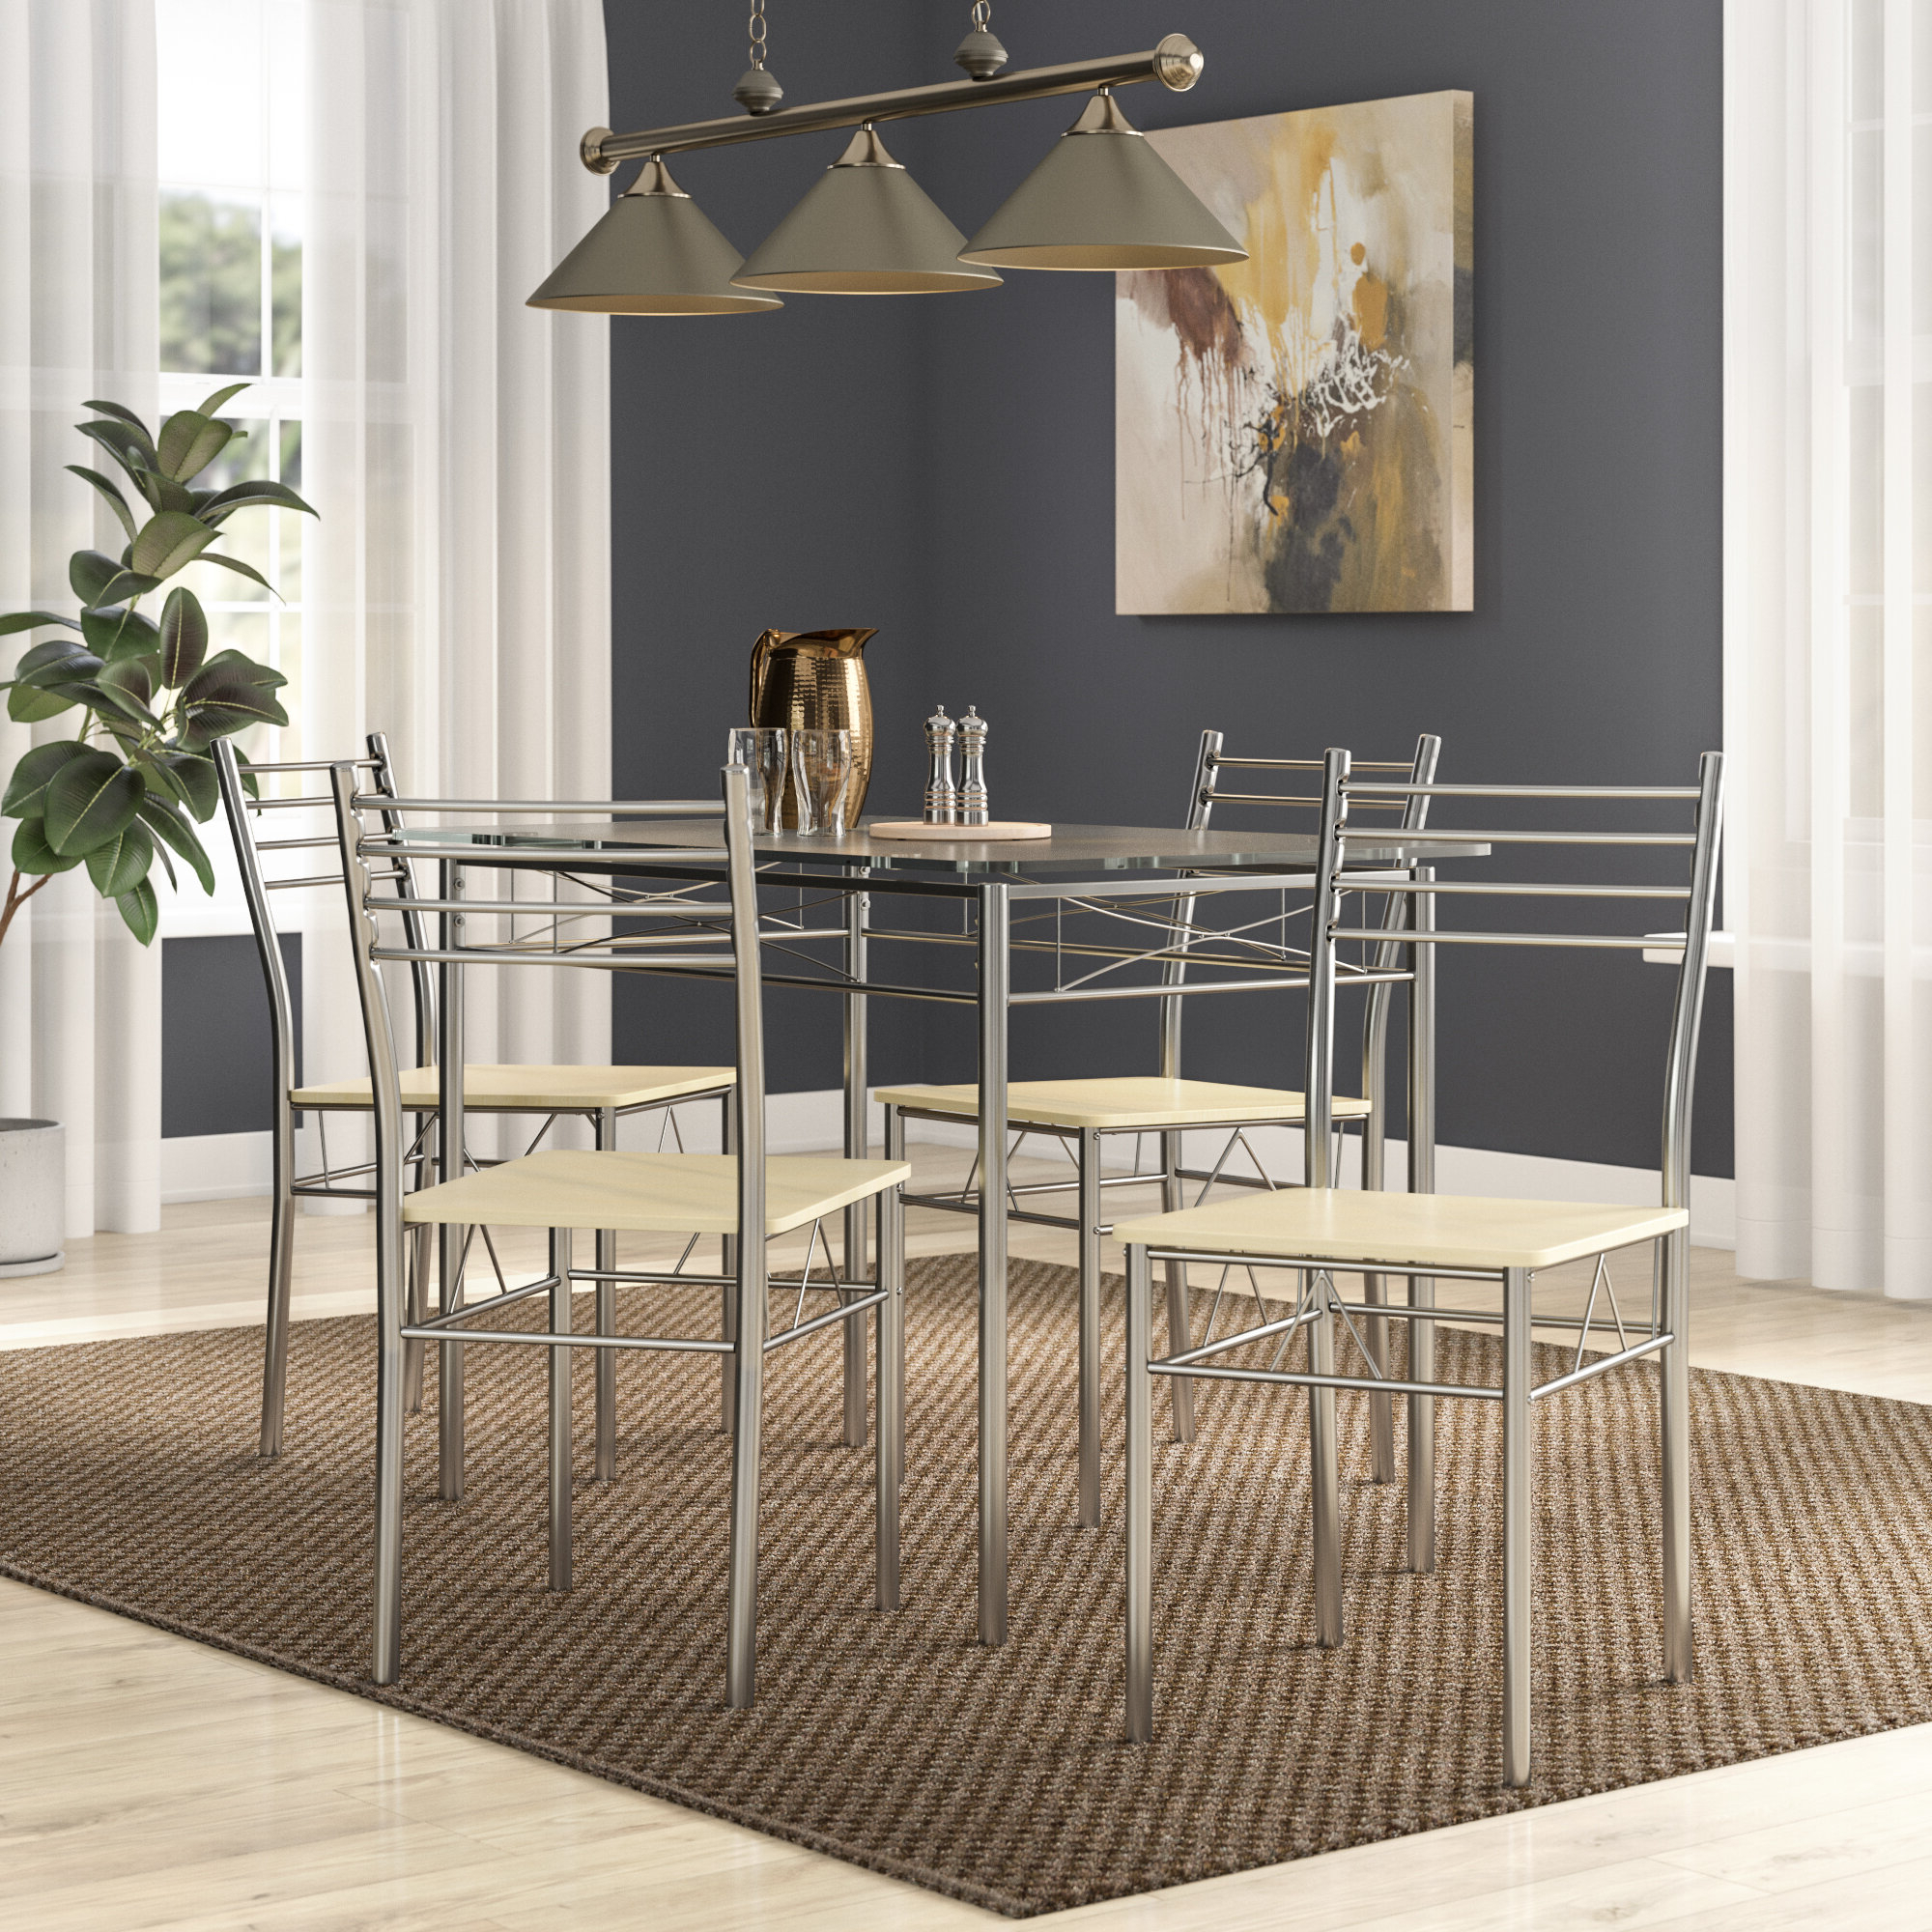 Zipcode Design North Reading 5 Piece Dining Table Set & Reviews In Widely Used North Reading 5 Piece Dining Table Sets (View 2 of 25)